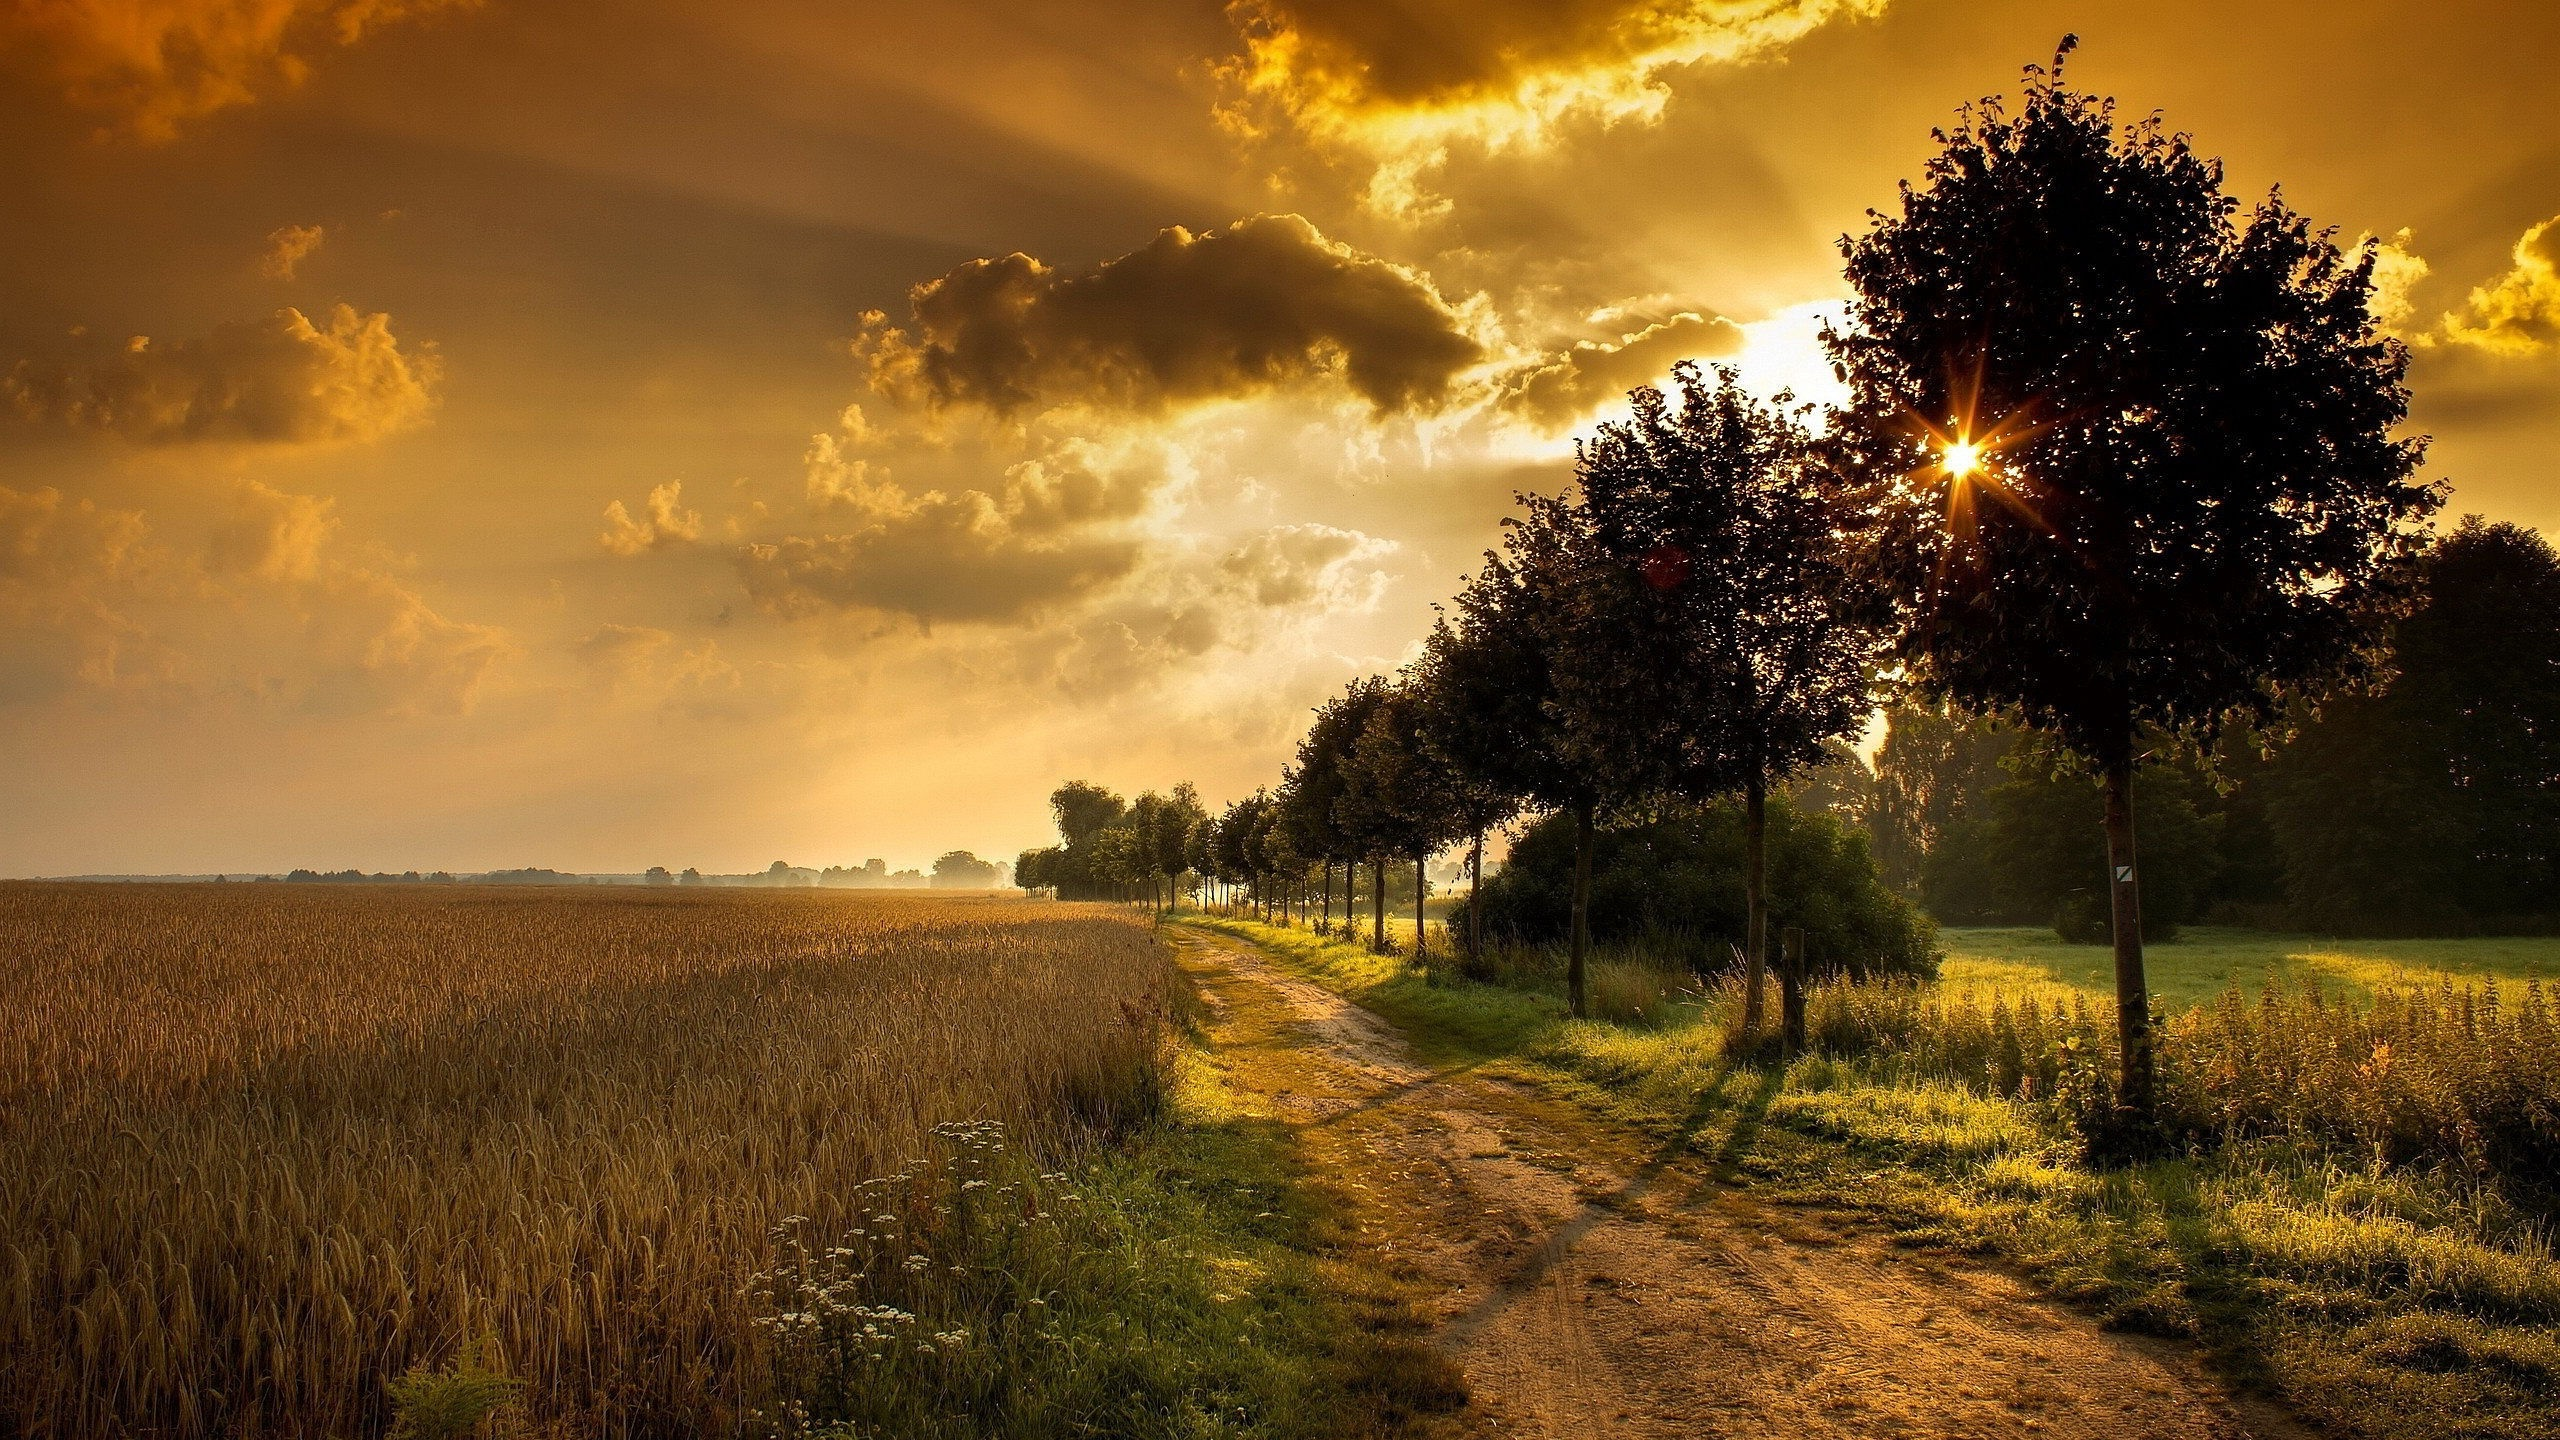 Download Vivo X7 Stock Hd Wallpapers: 2560x1440 Wheat Field Path Trees Sunset Desktop PC And Mac